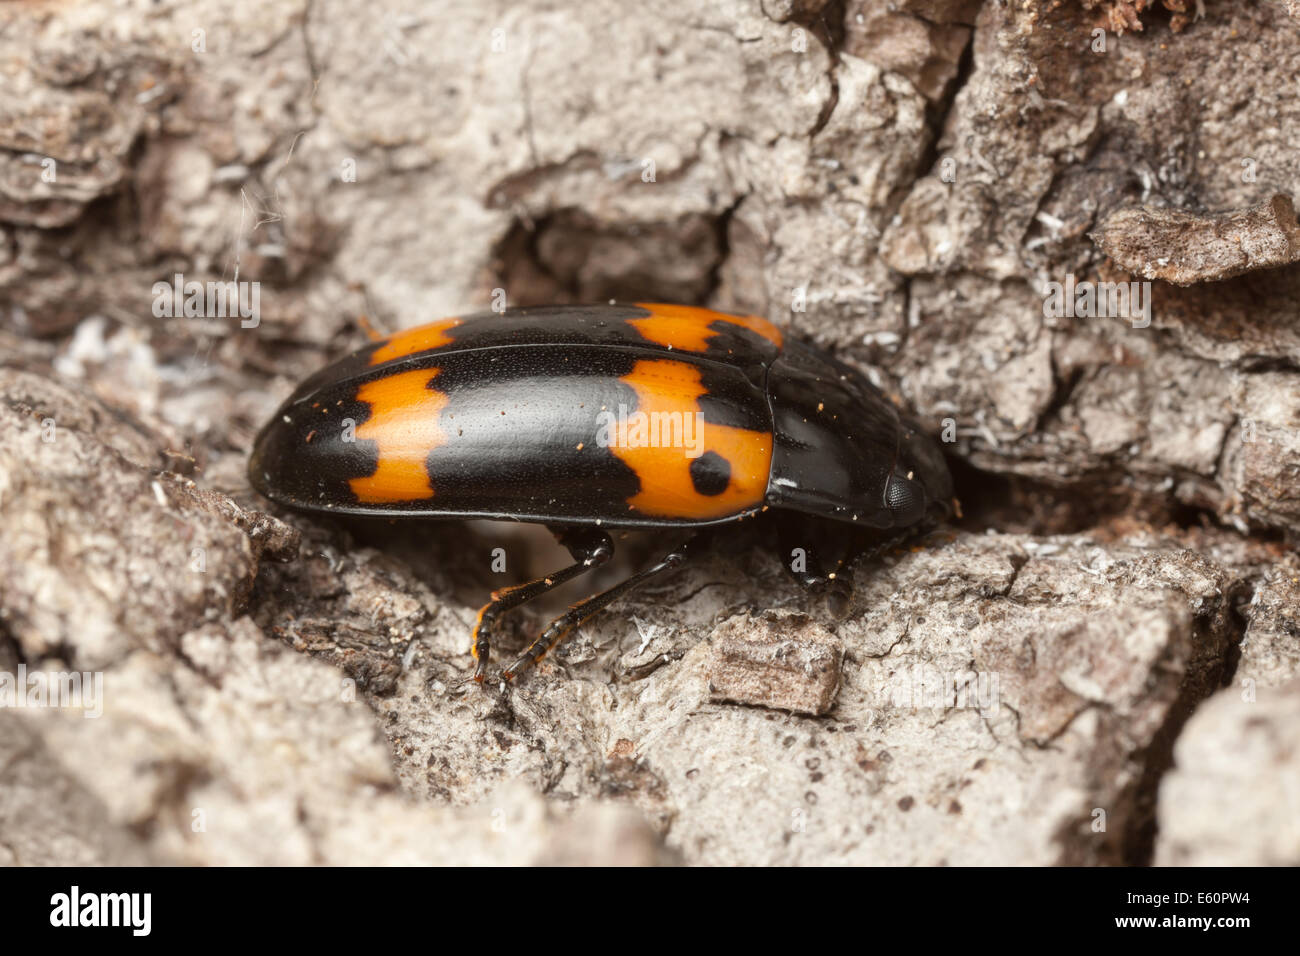 A Pleasing Fungus Beetle (Megalodacne fasciata) explores the bark of a dead and decaying tree. - Stock Image